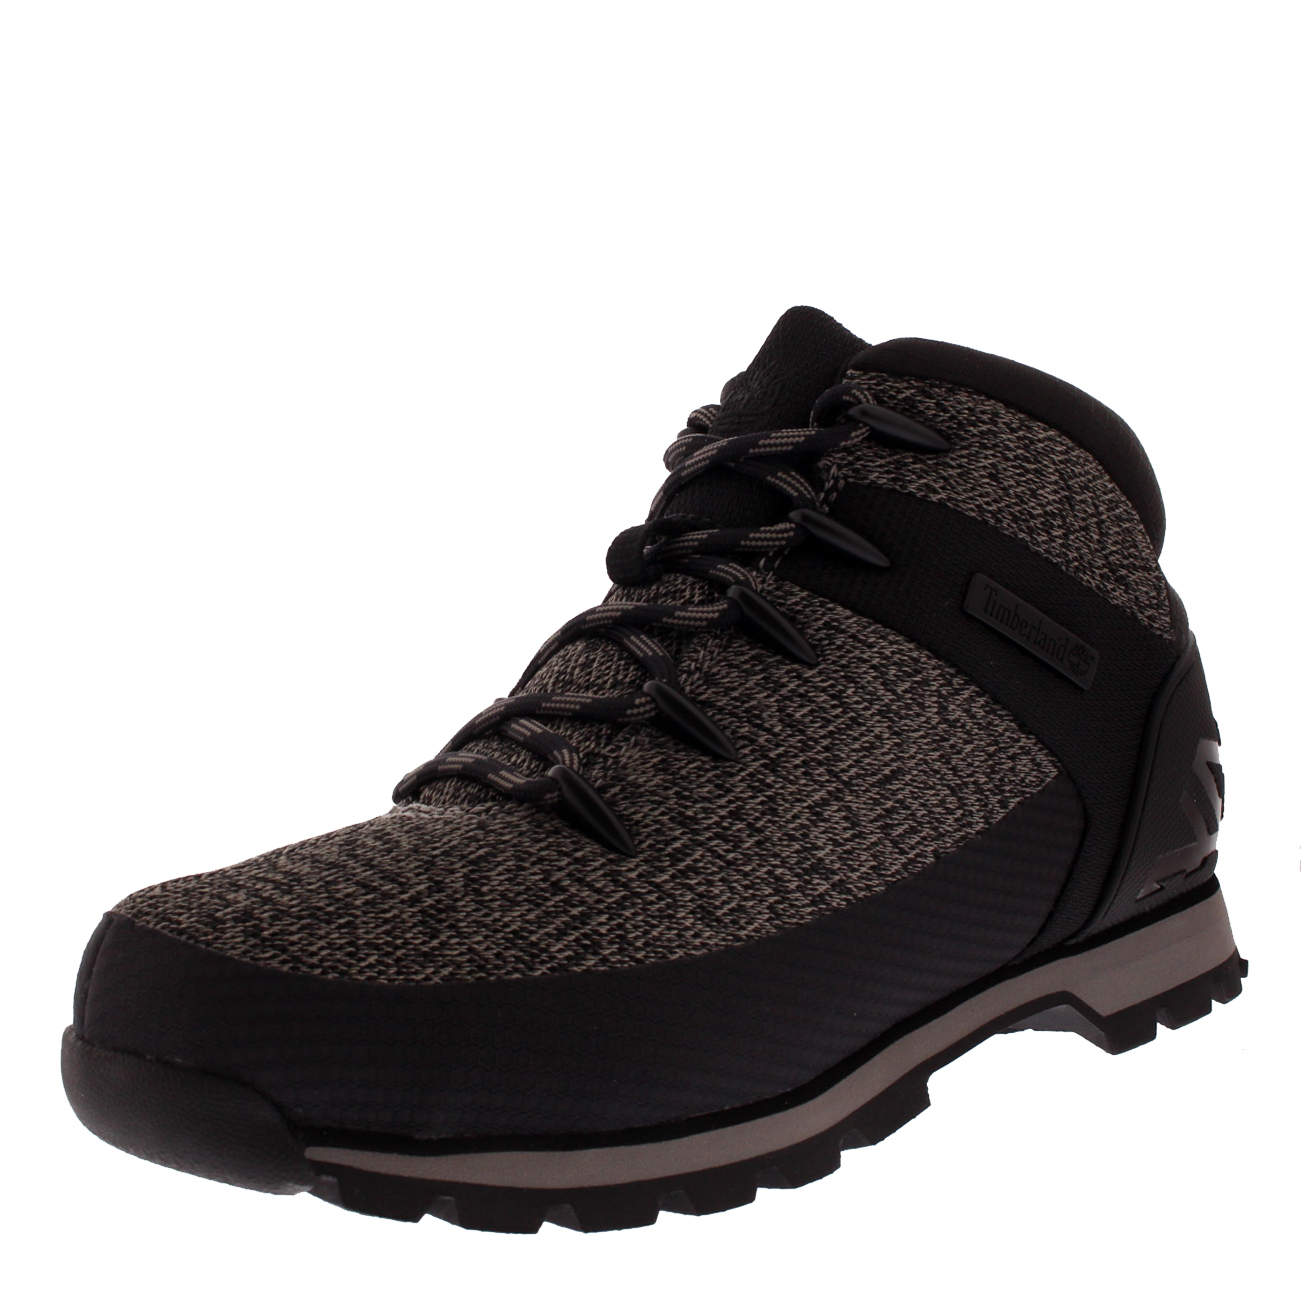 5 Fabric Hiker Outdoor Details About Sprint Mens Boot Us 5 6 13 Timberland Euro Ankle Walking nkX80wNOP